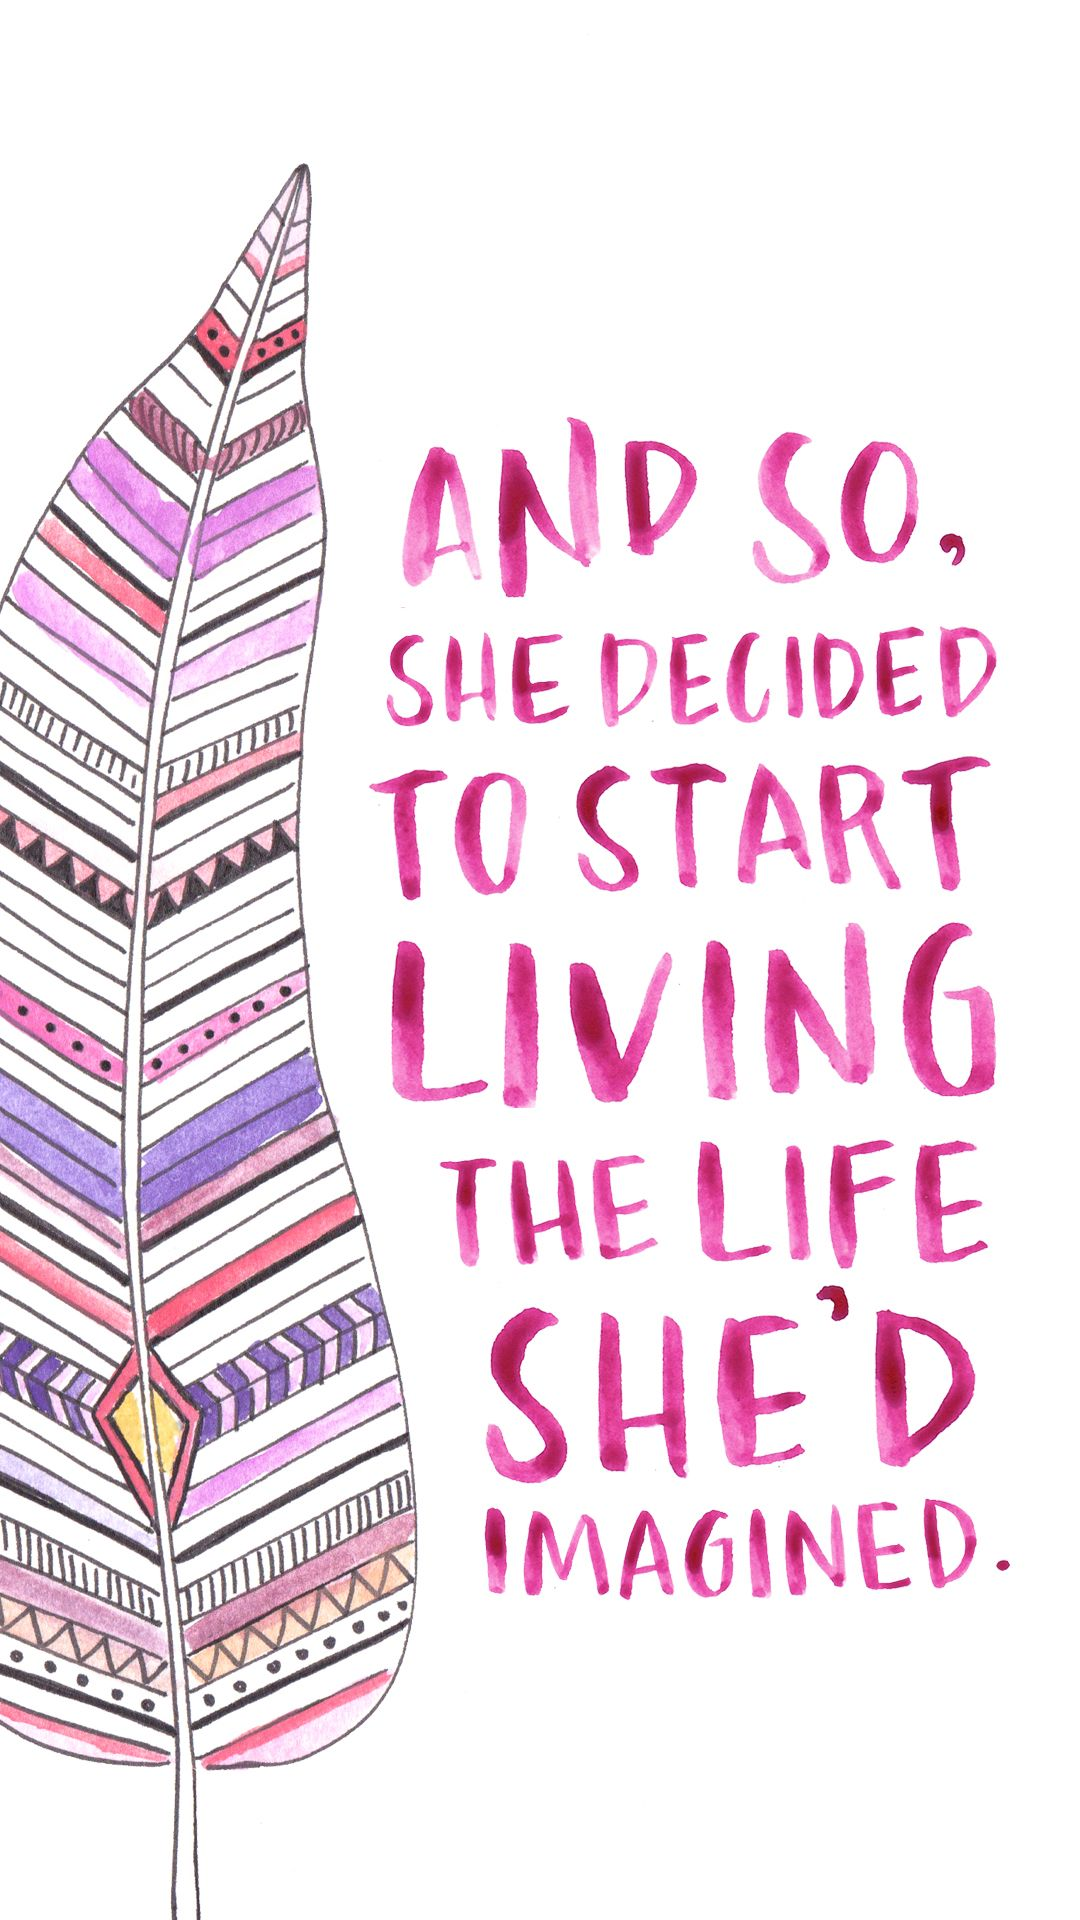 Download hd wallpapers of simple life quote free download high - And So She Decided Living The Life She D Imagined